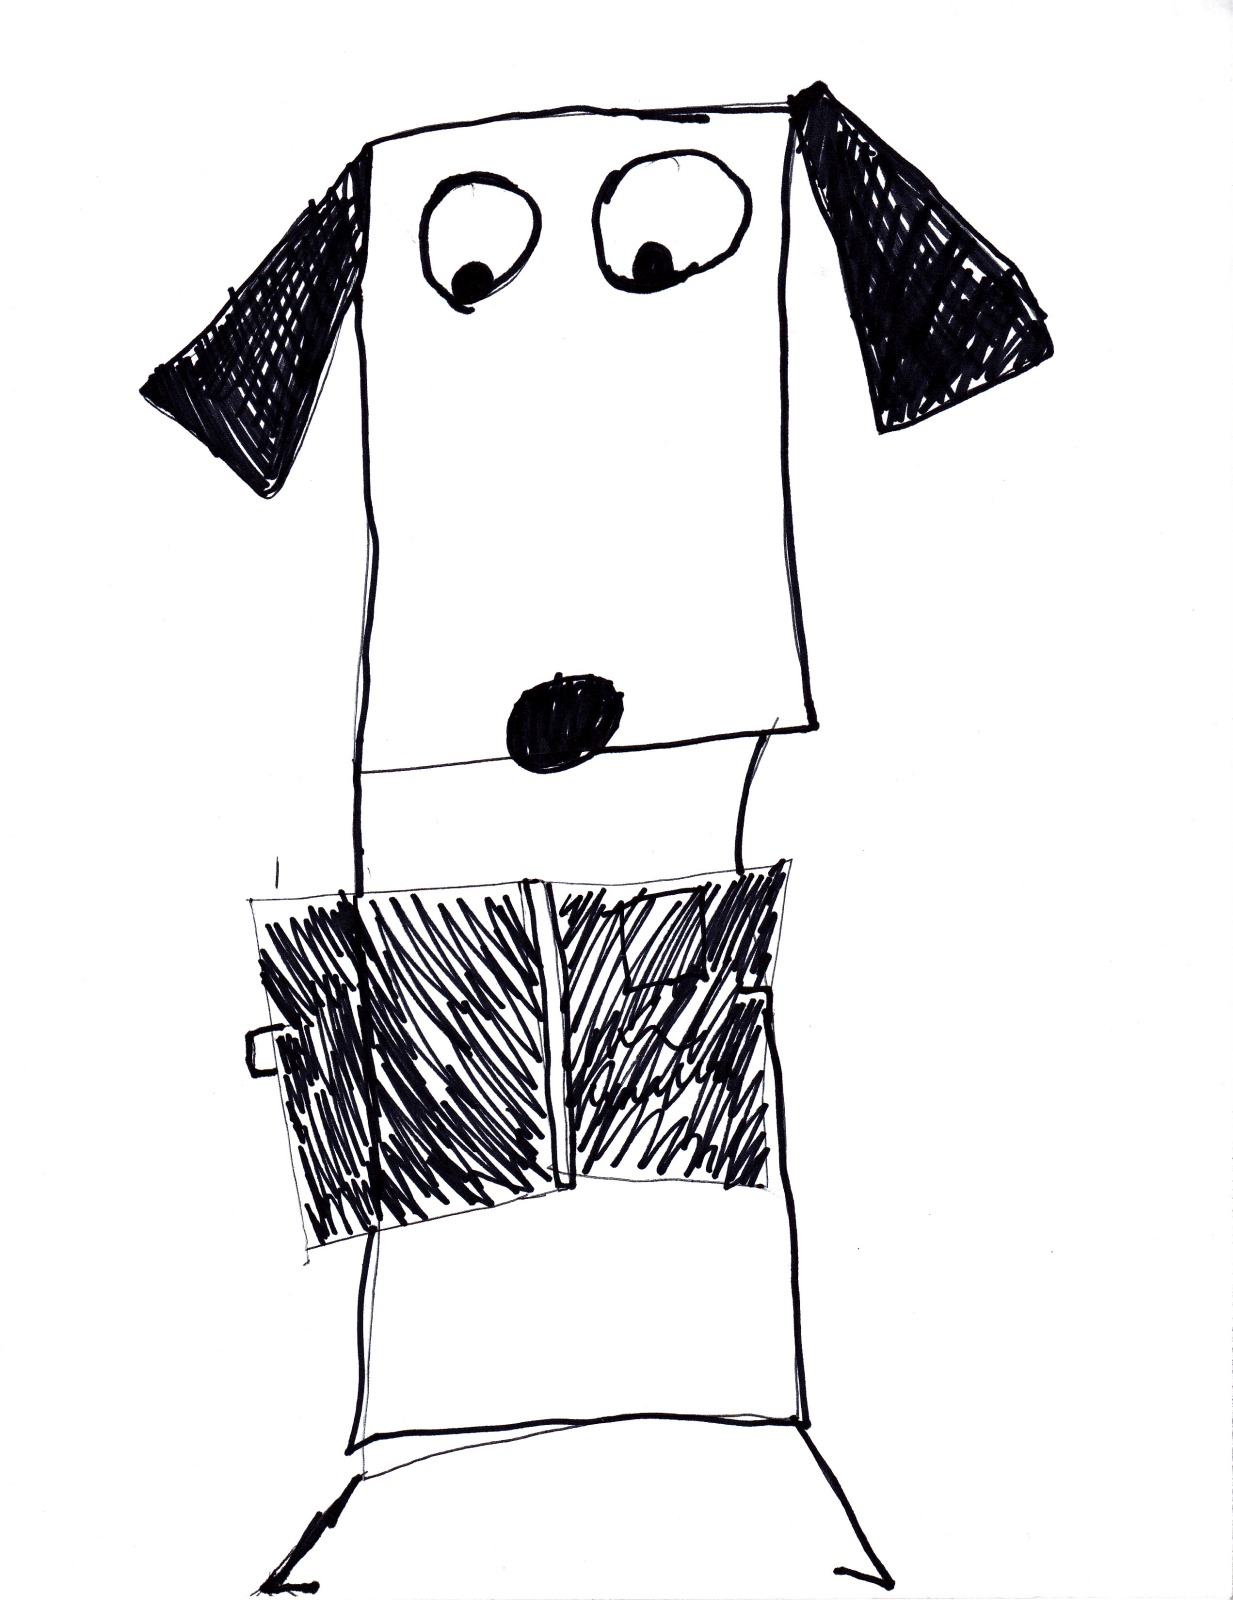 Stick Dog 3, artwork by Natalie Anderson